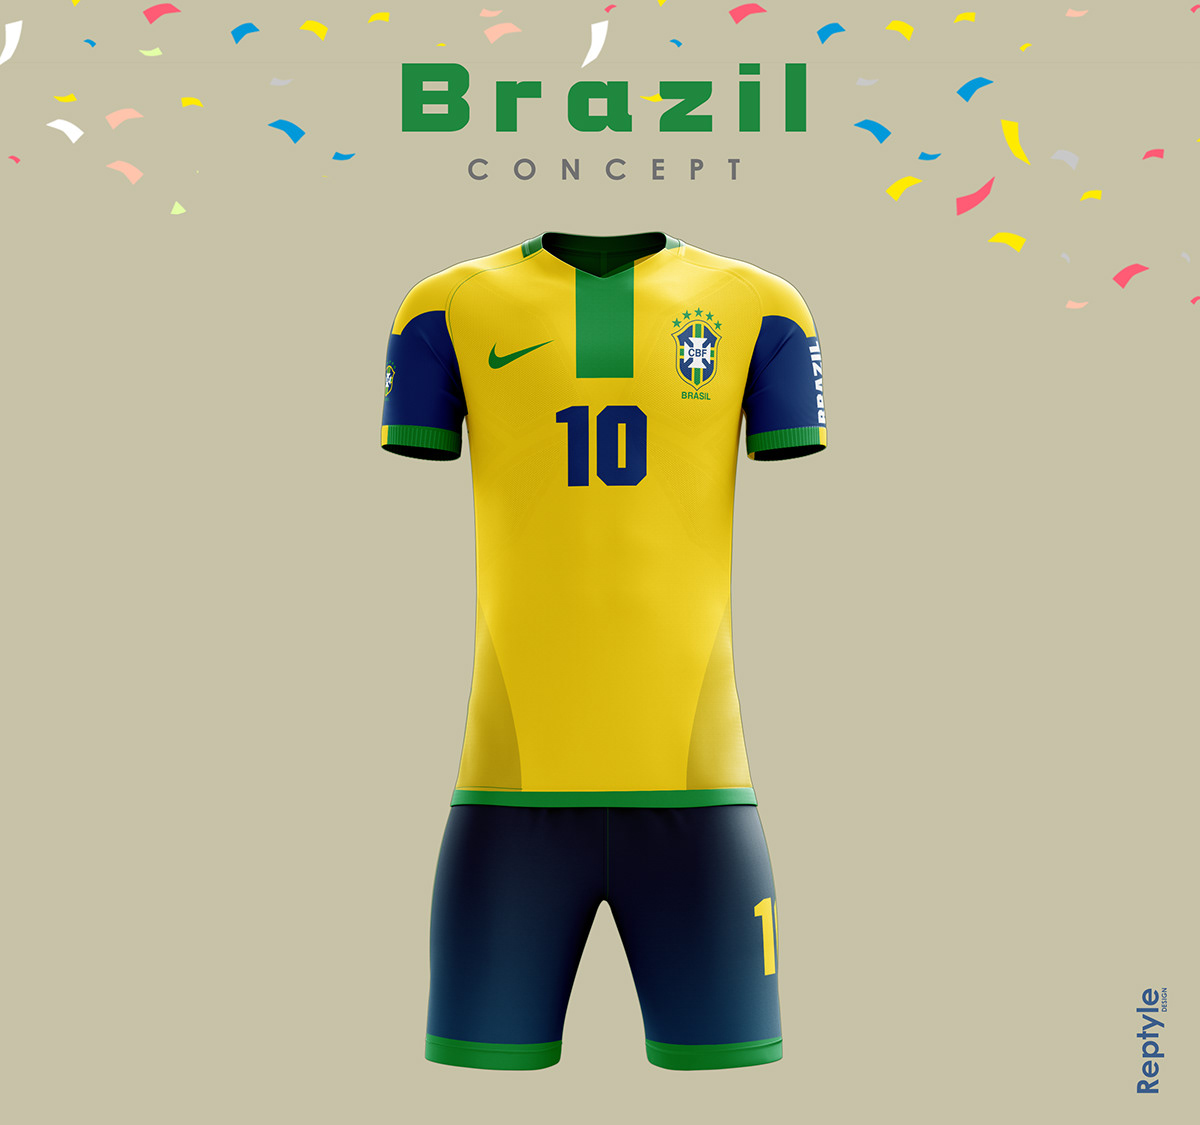 Brazil soccer kit concept. Maurizio Moretti •. Follow Following Unfollow.  Save to Collection 94ebfb90a